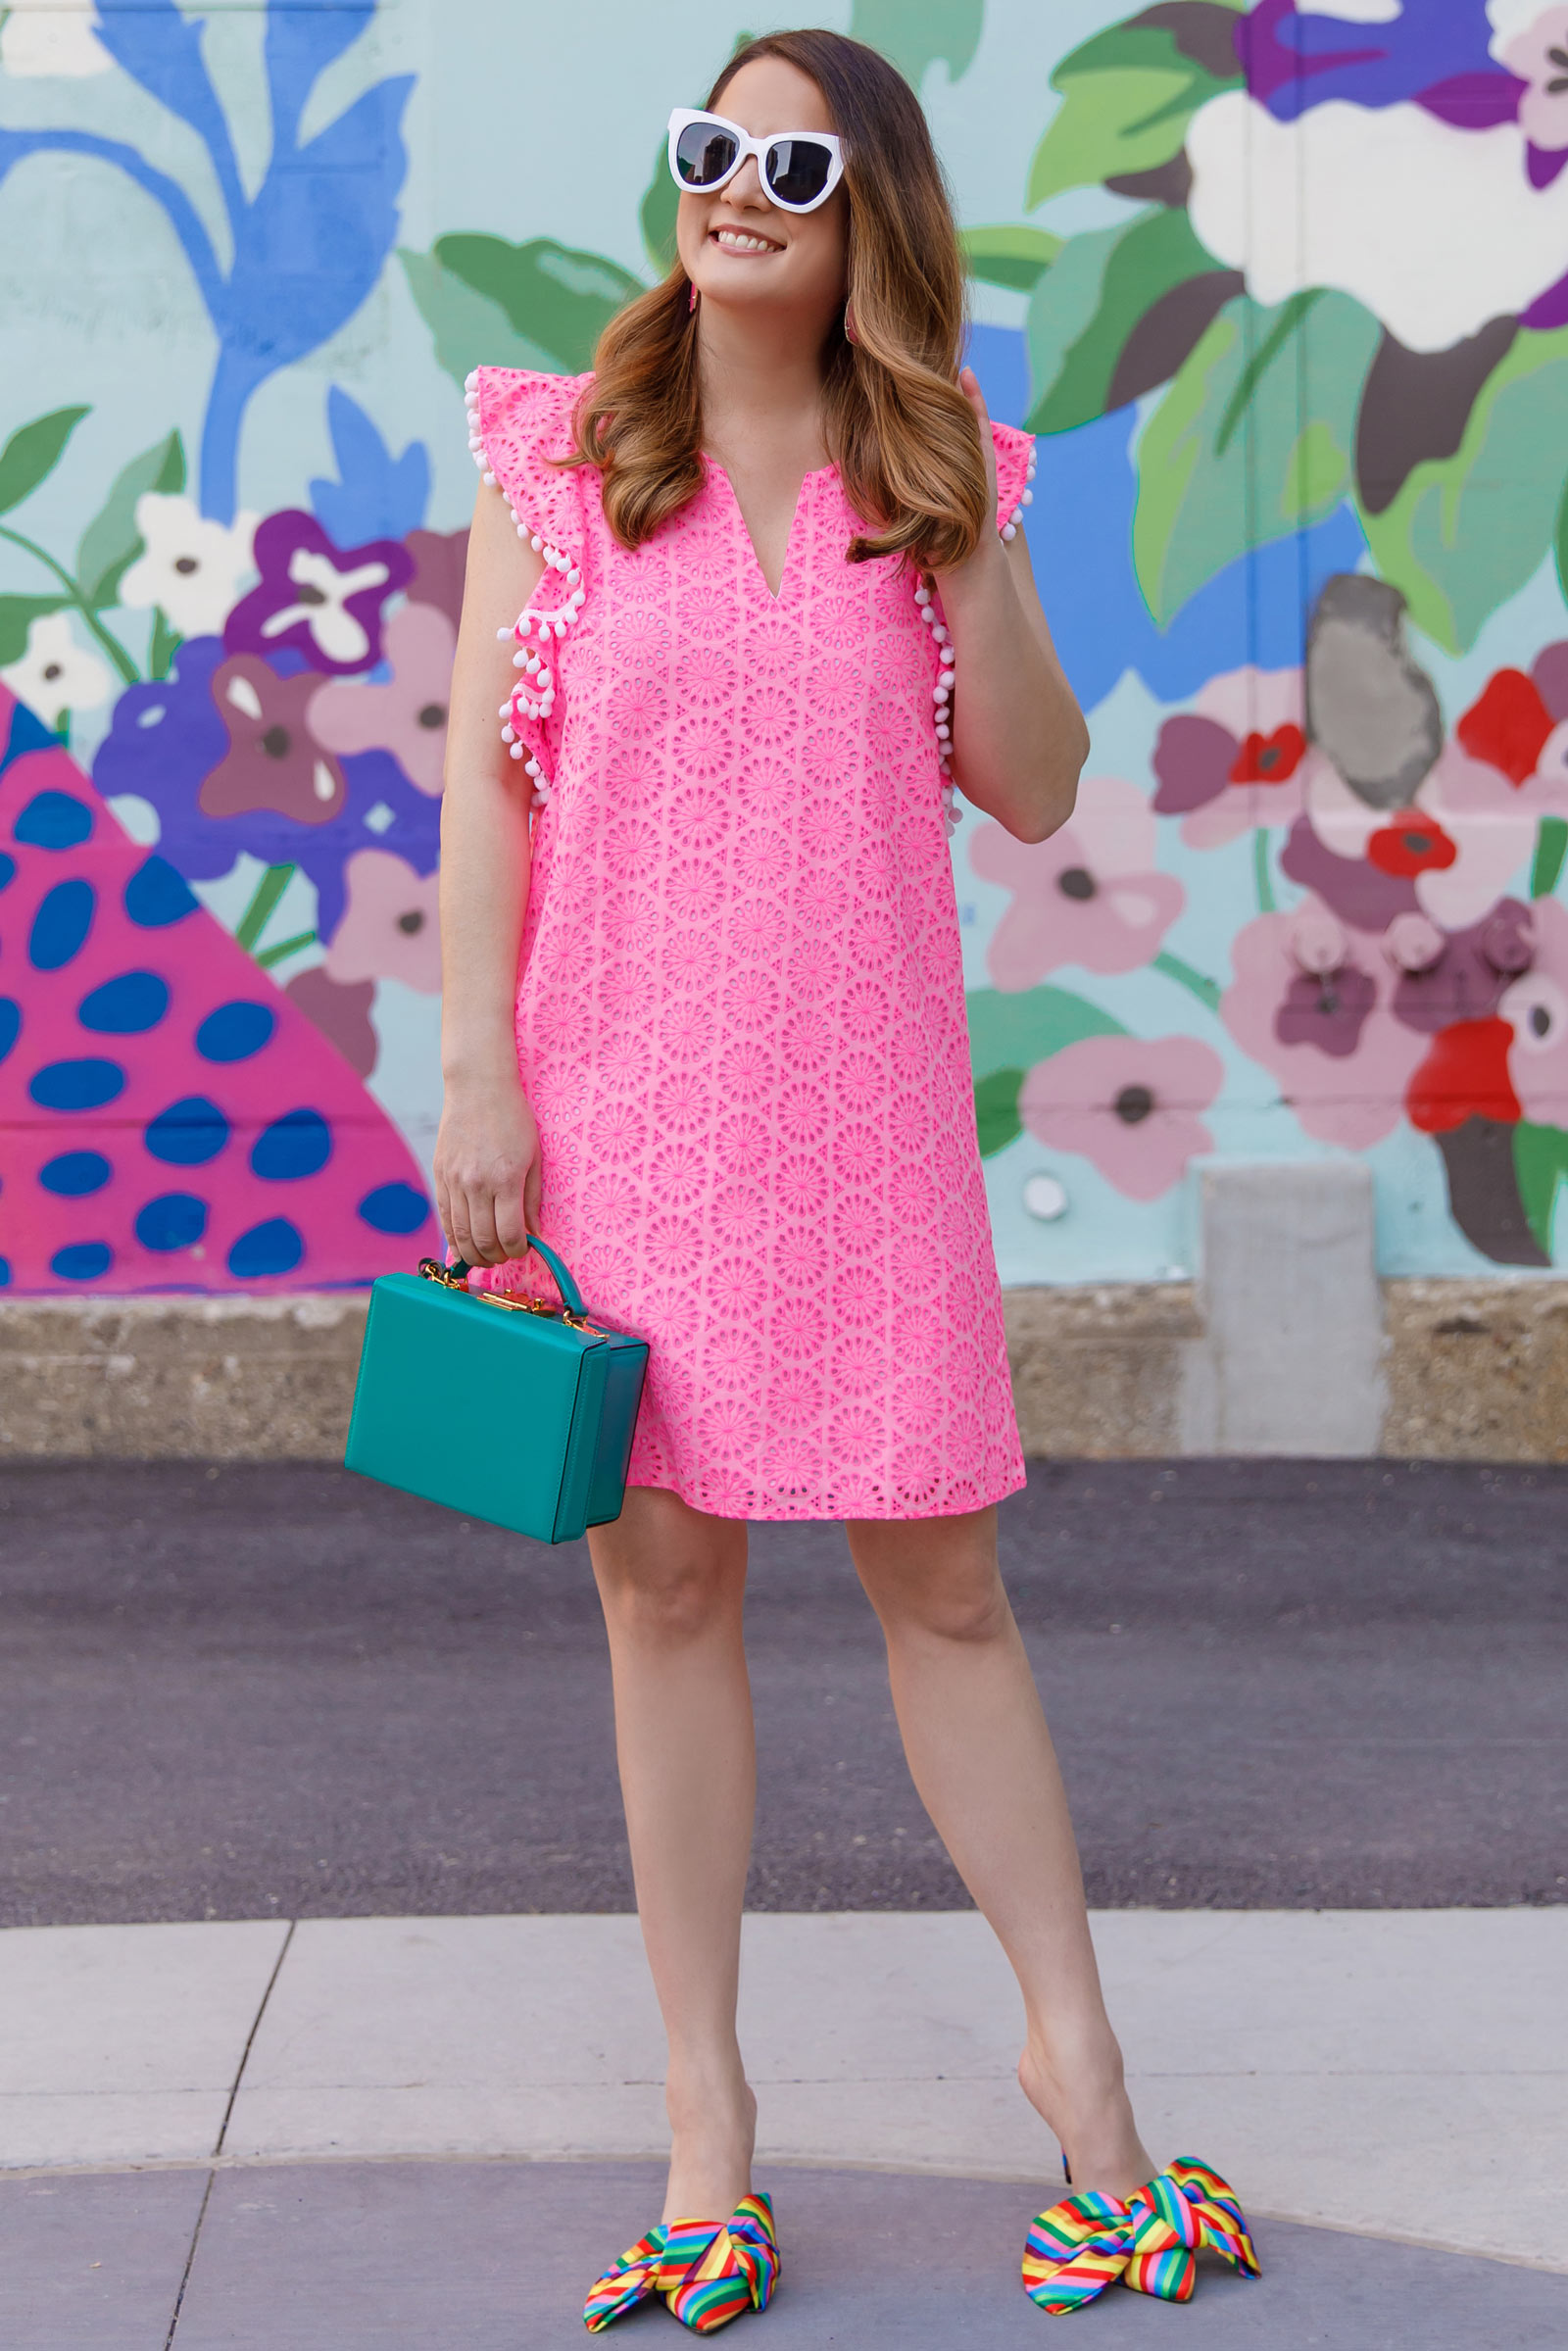 Lilly Pulitzer After Party Sale 2021 Outfits